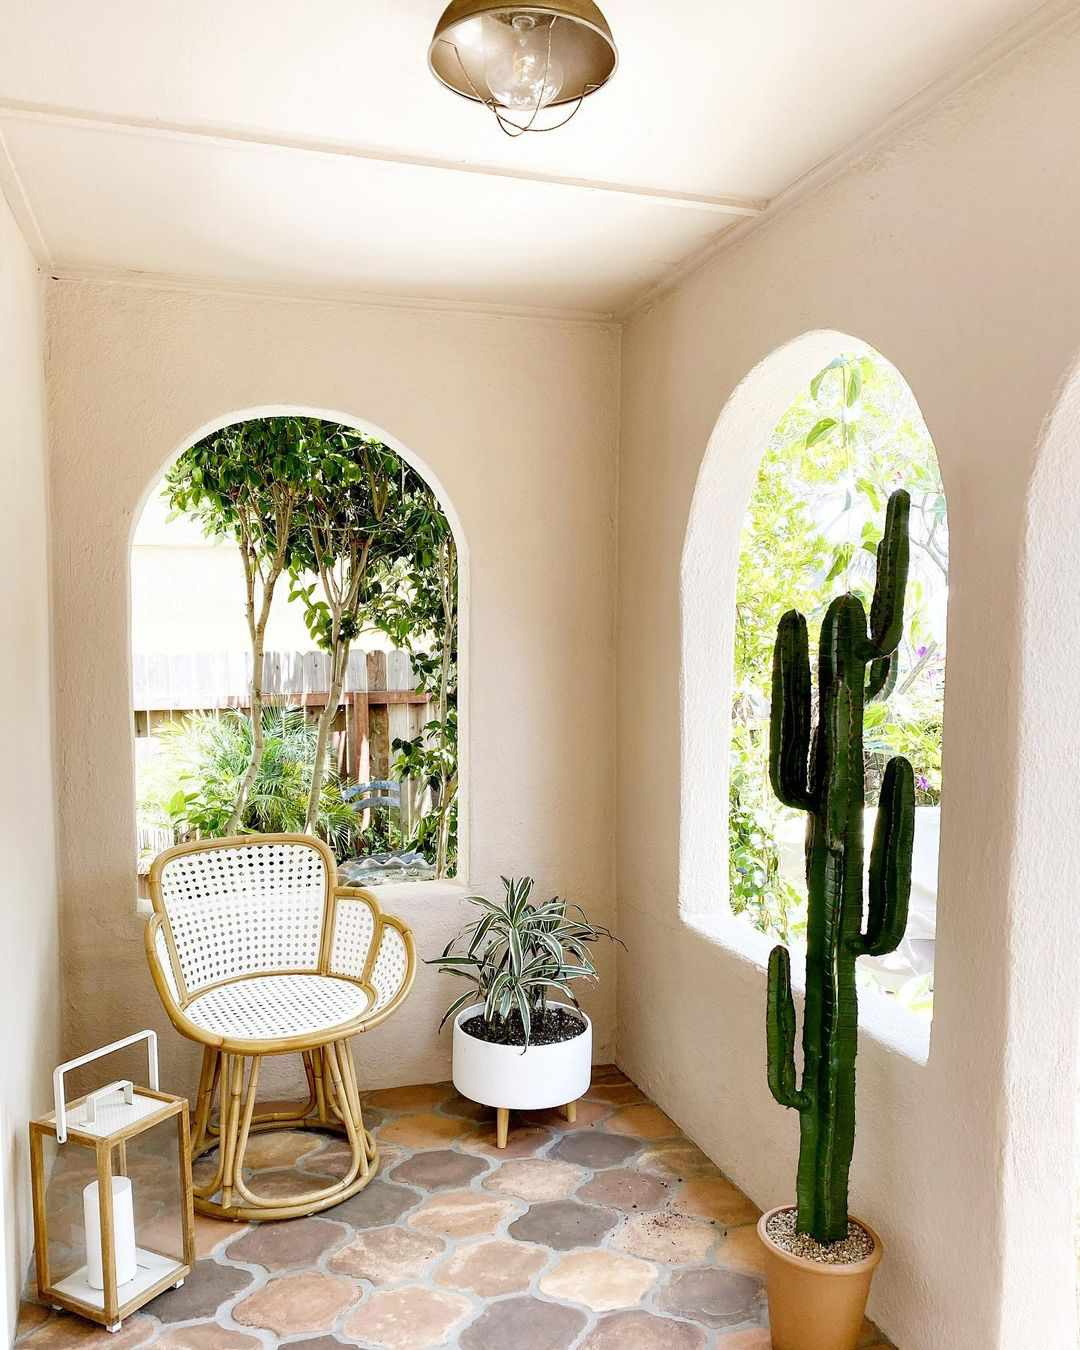 Small patio with a cactus